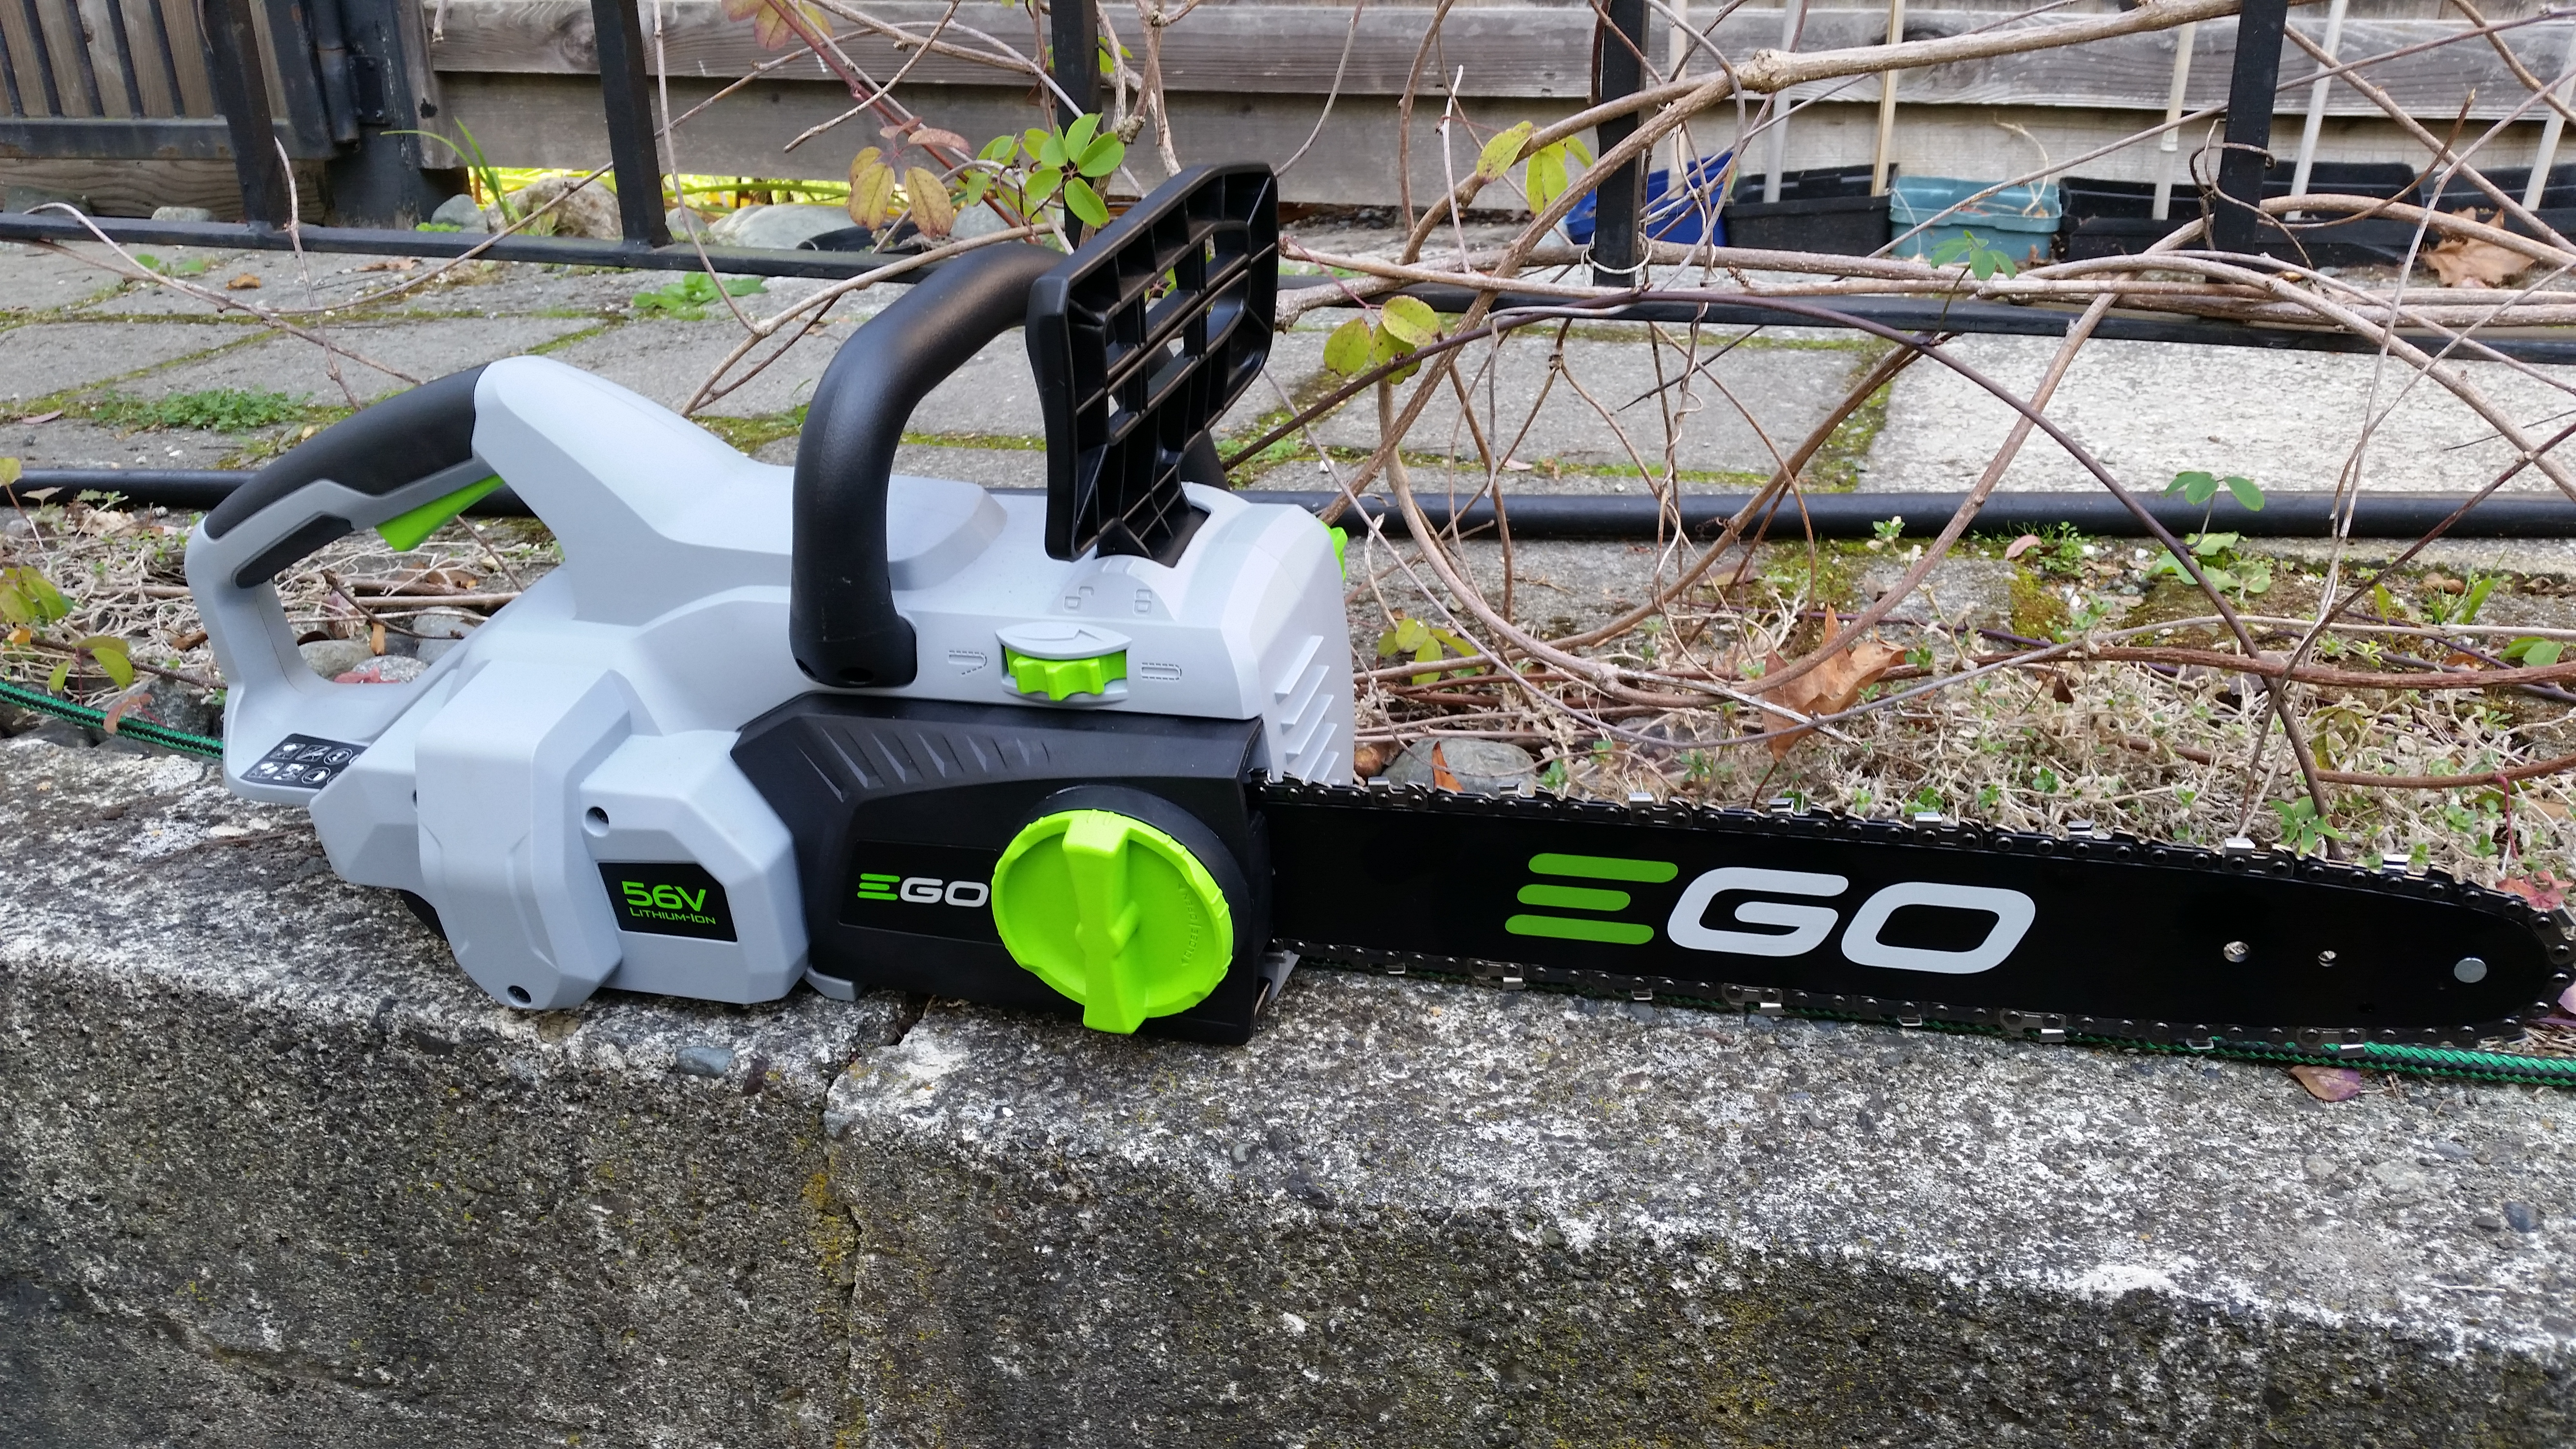 Cordless 56V chainsaw  I tried several and bought the most